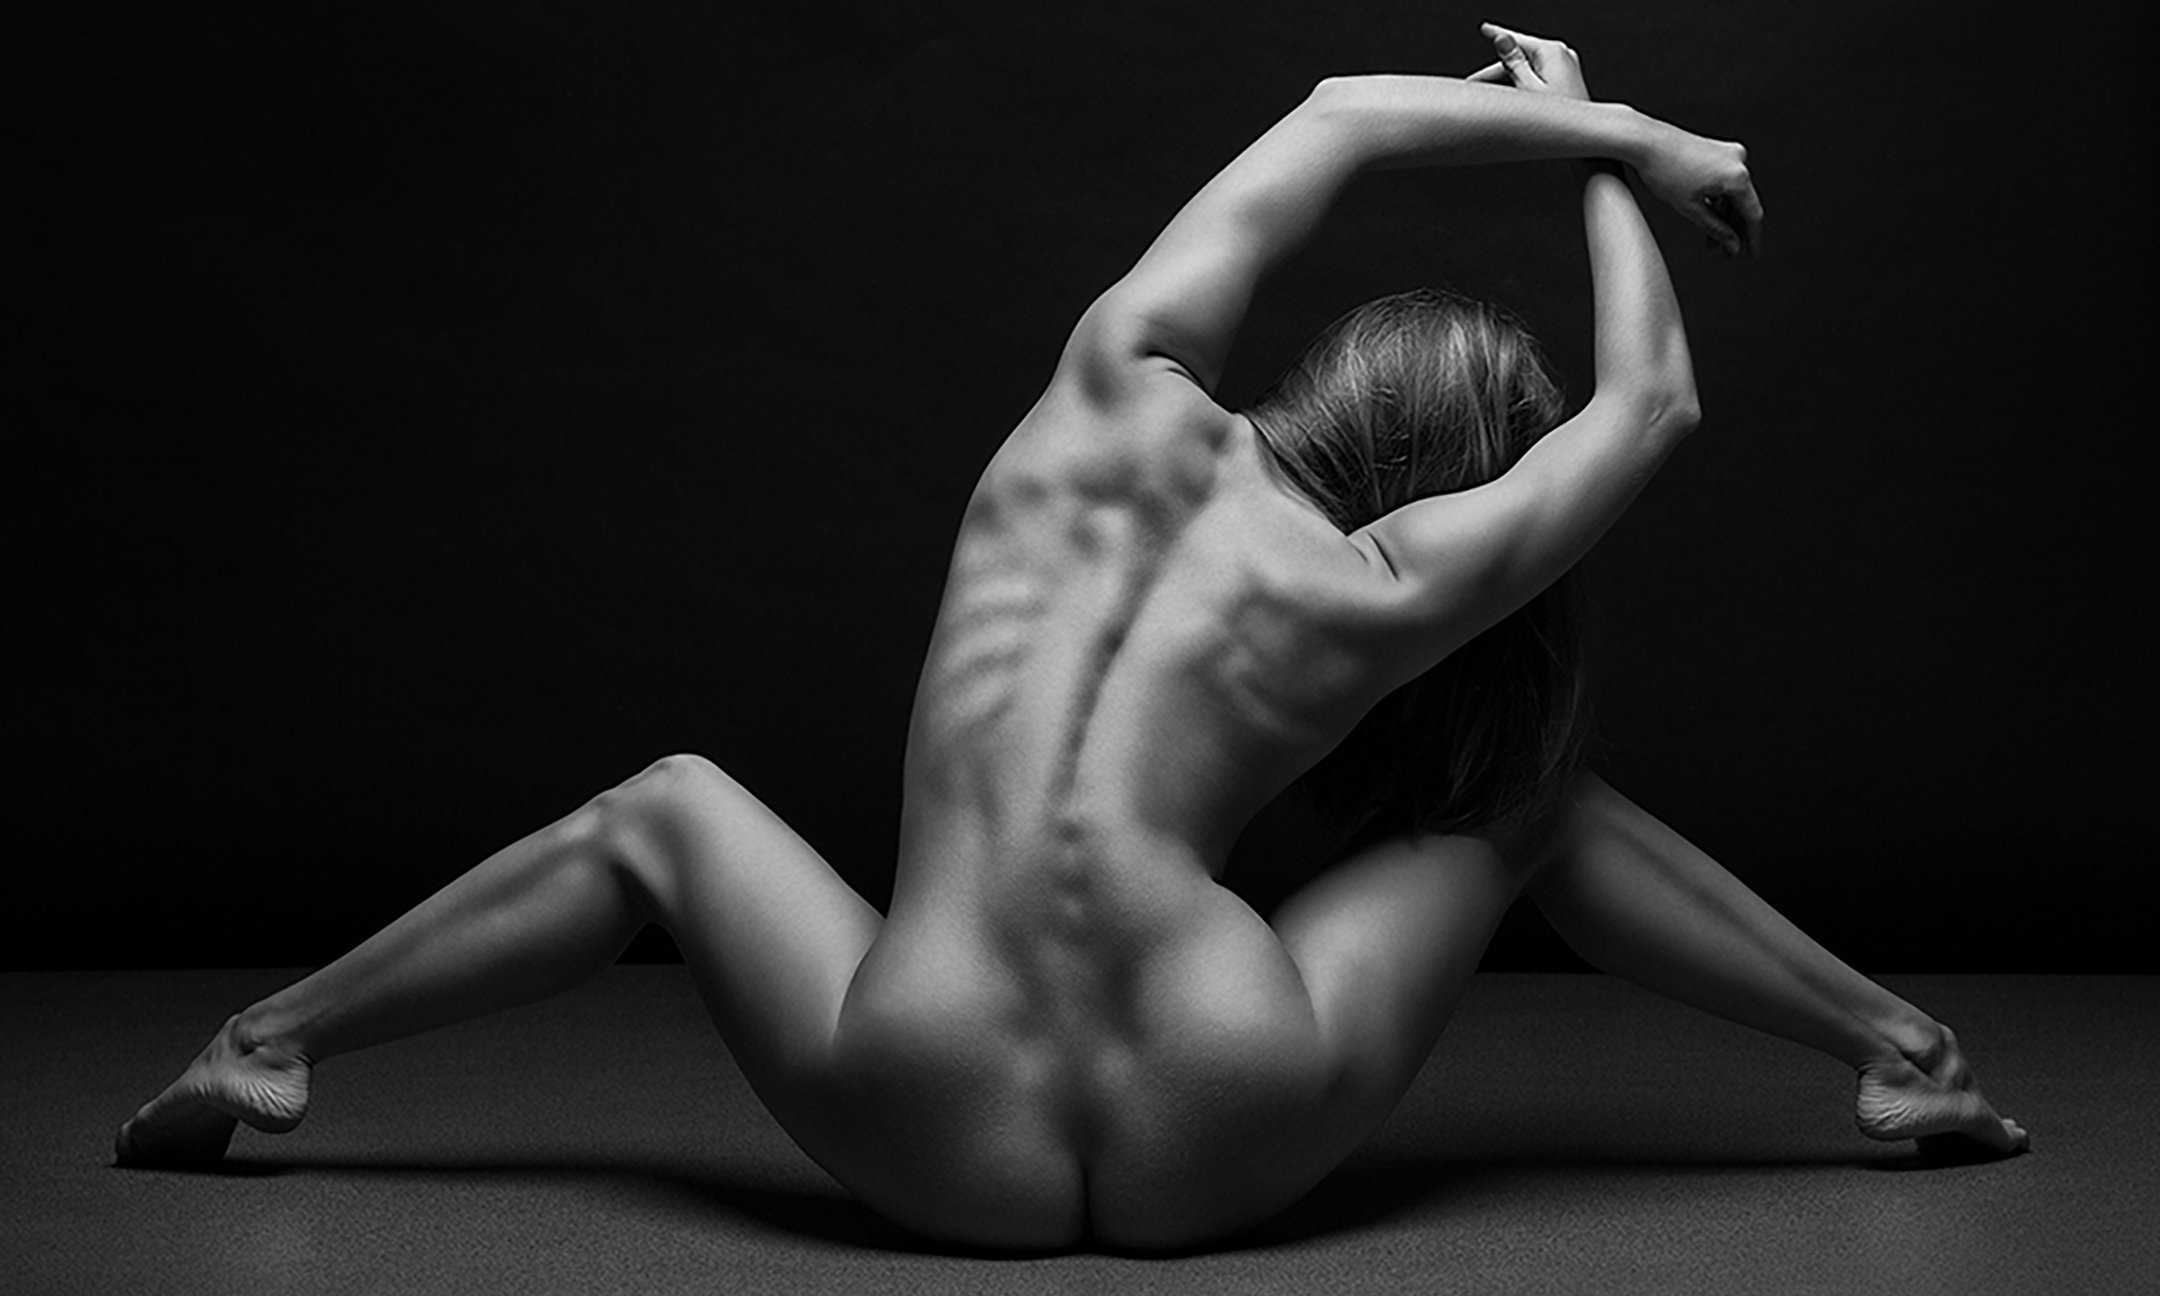 The Naked Female Body 83